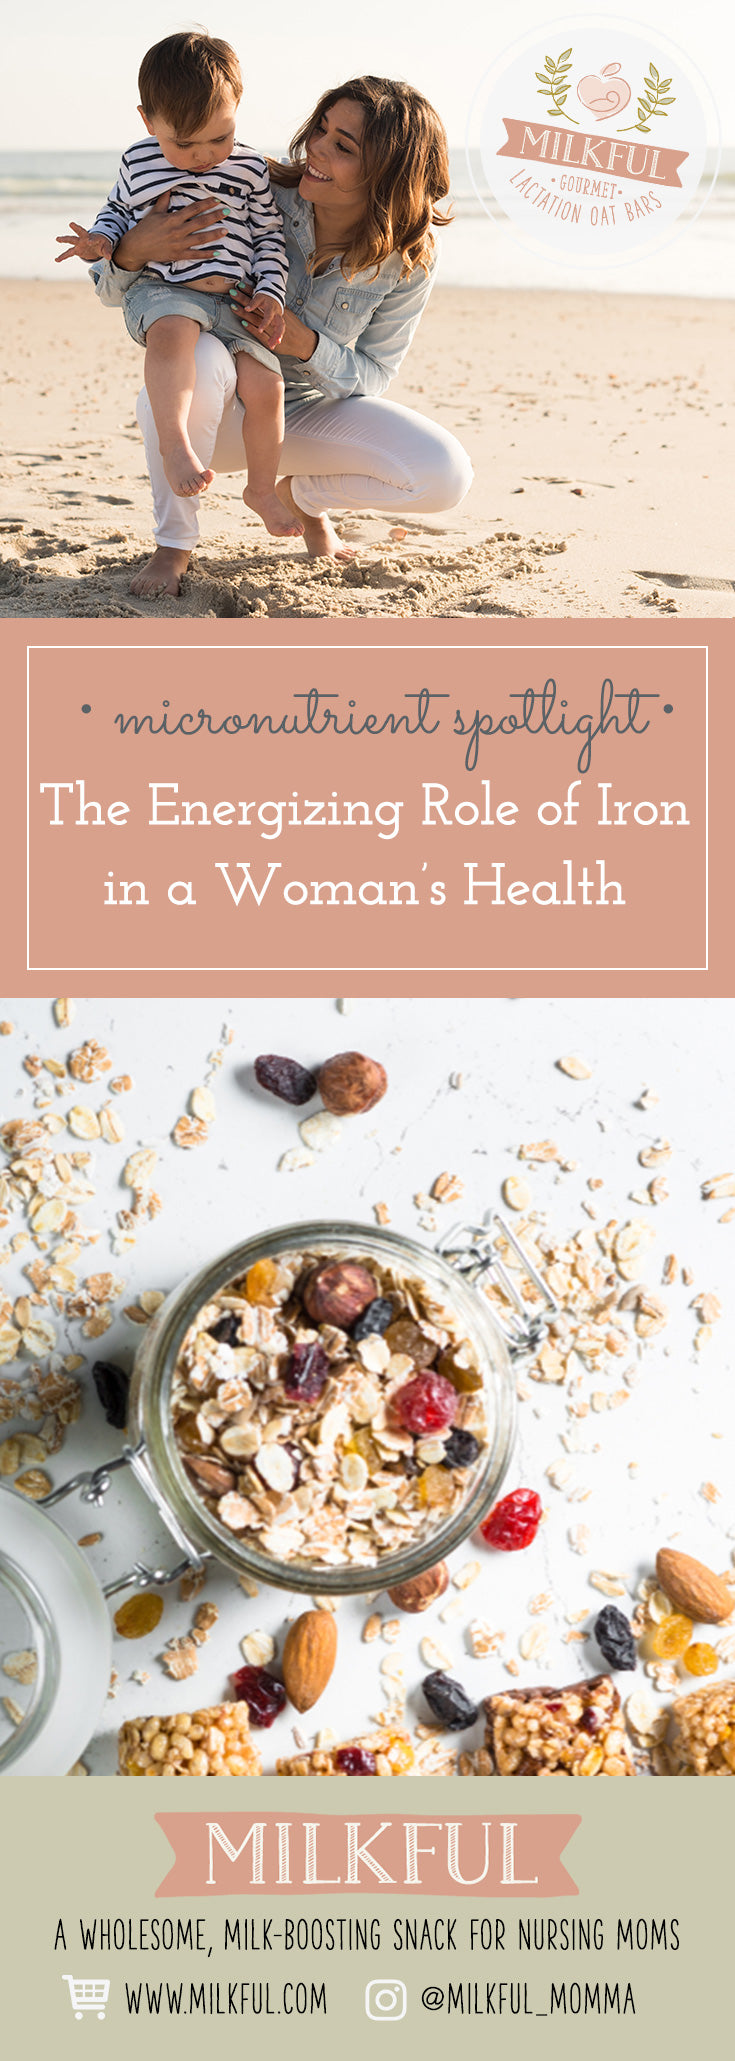 The Energizing Role of Iron in a Woman's Health